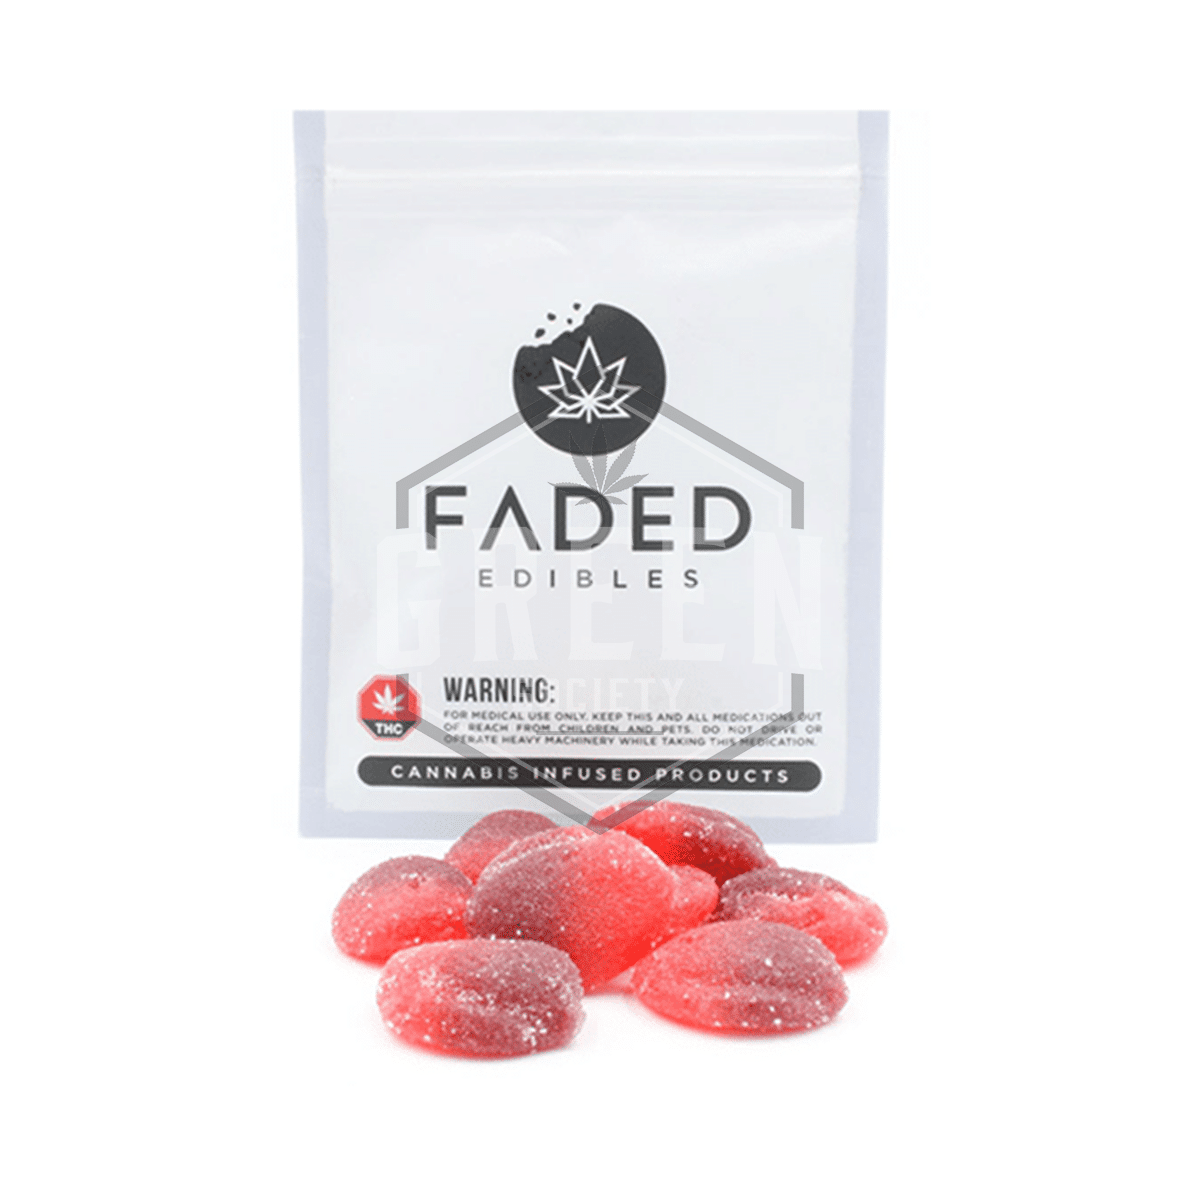 Cherry Bombs by Faded Cannabis Co. by Green Society - Image © 2020 Green Society. All Rights Reserved.